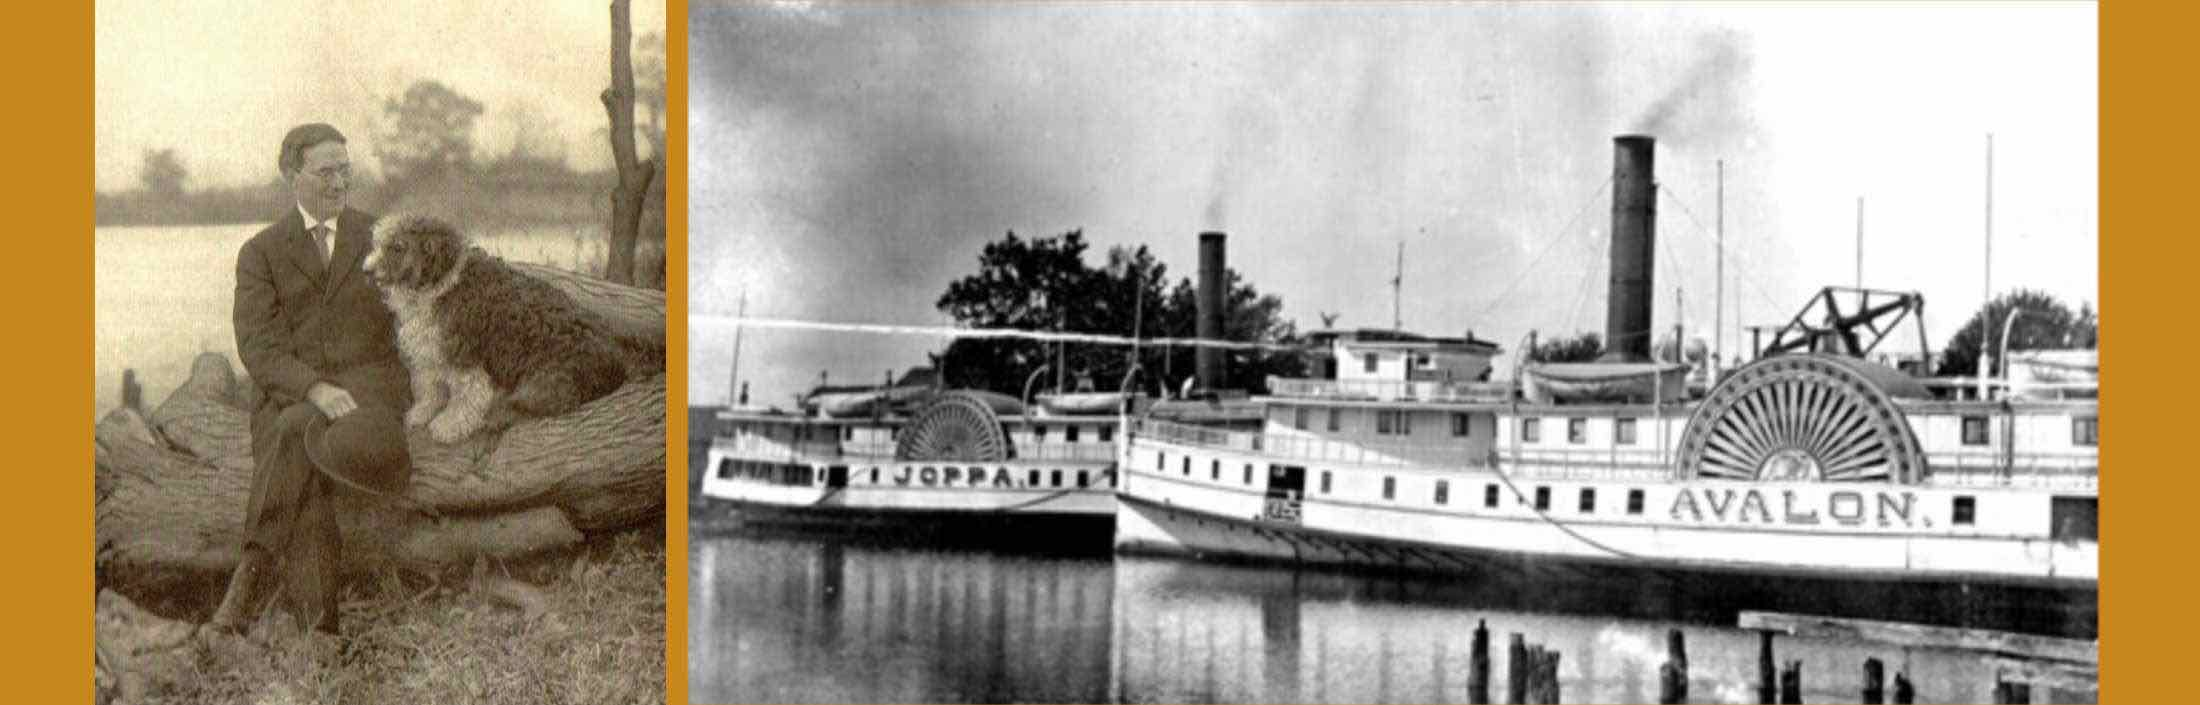 ODE TO THE STEAMBOATS: 'When the Bay Boats Blow'